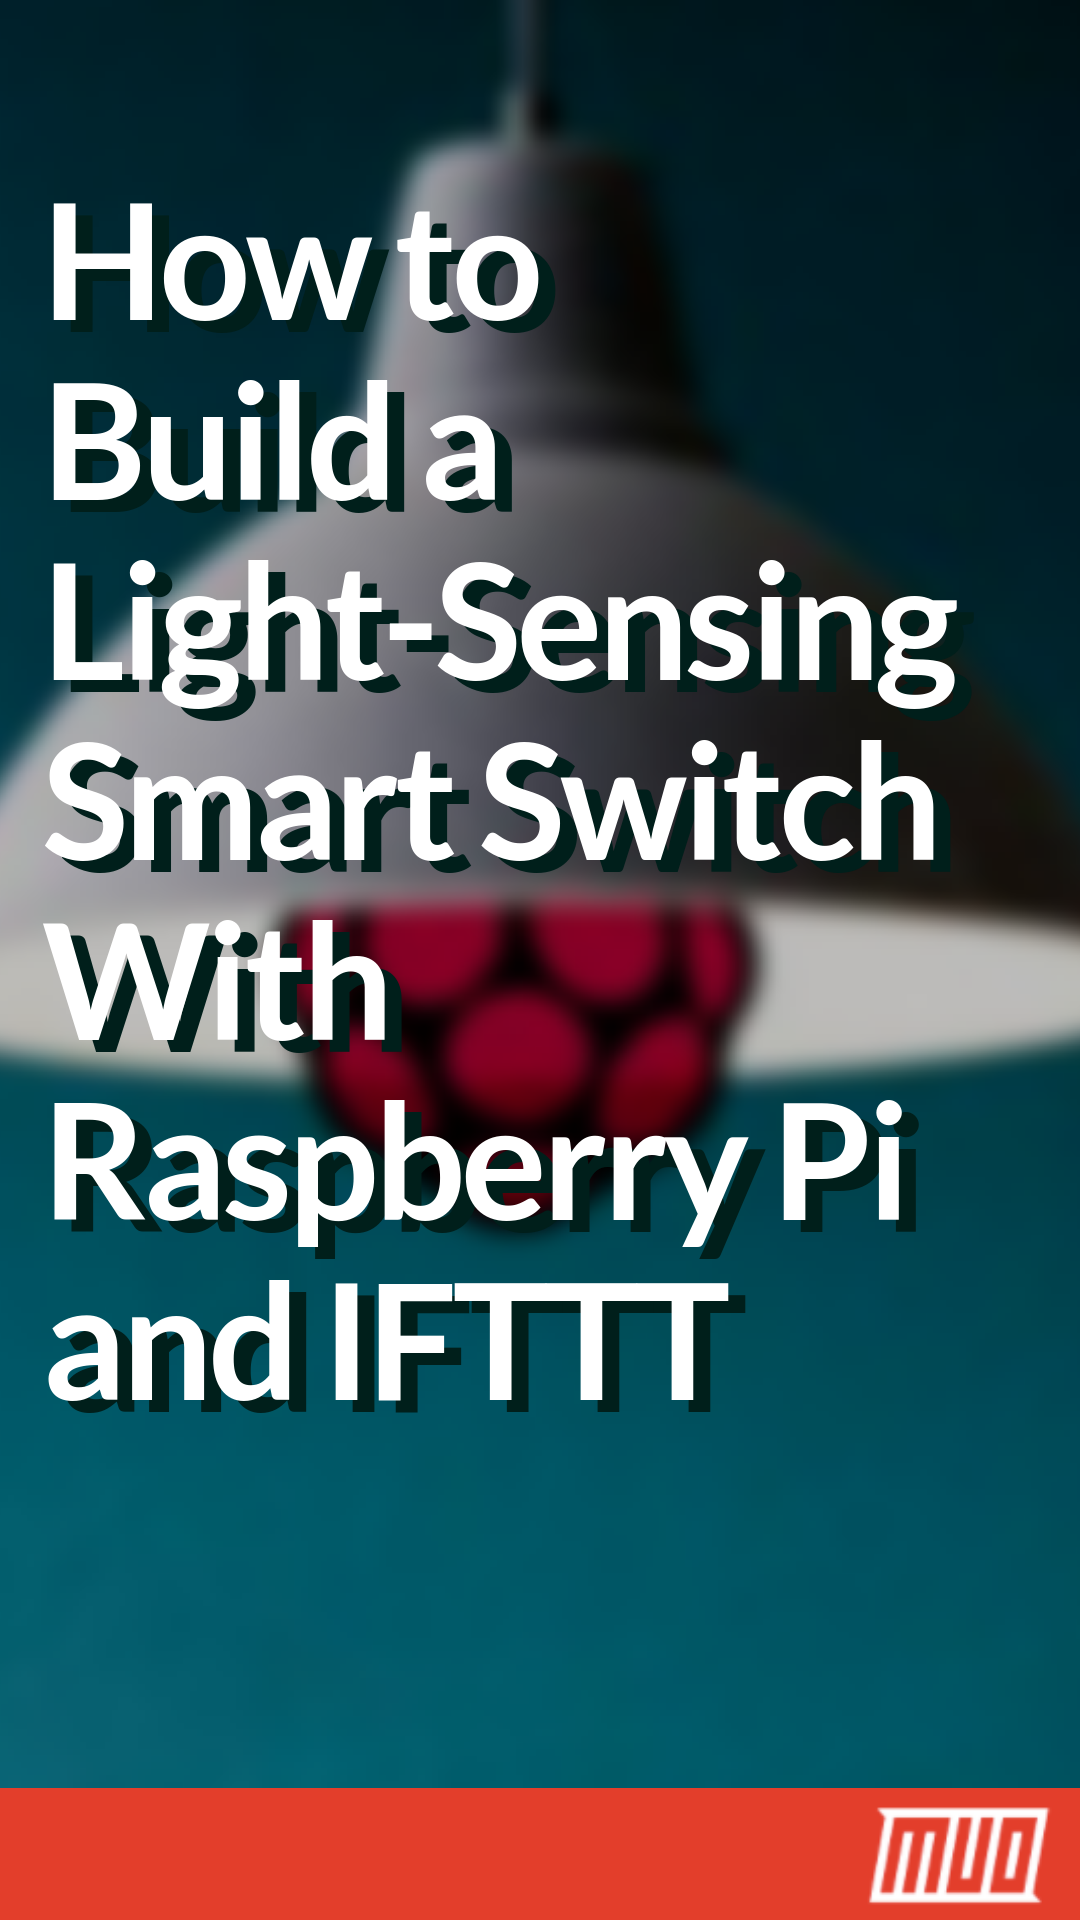 How to Build a Light-Sensing Smart Switch With Raspberry Pi and